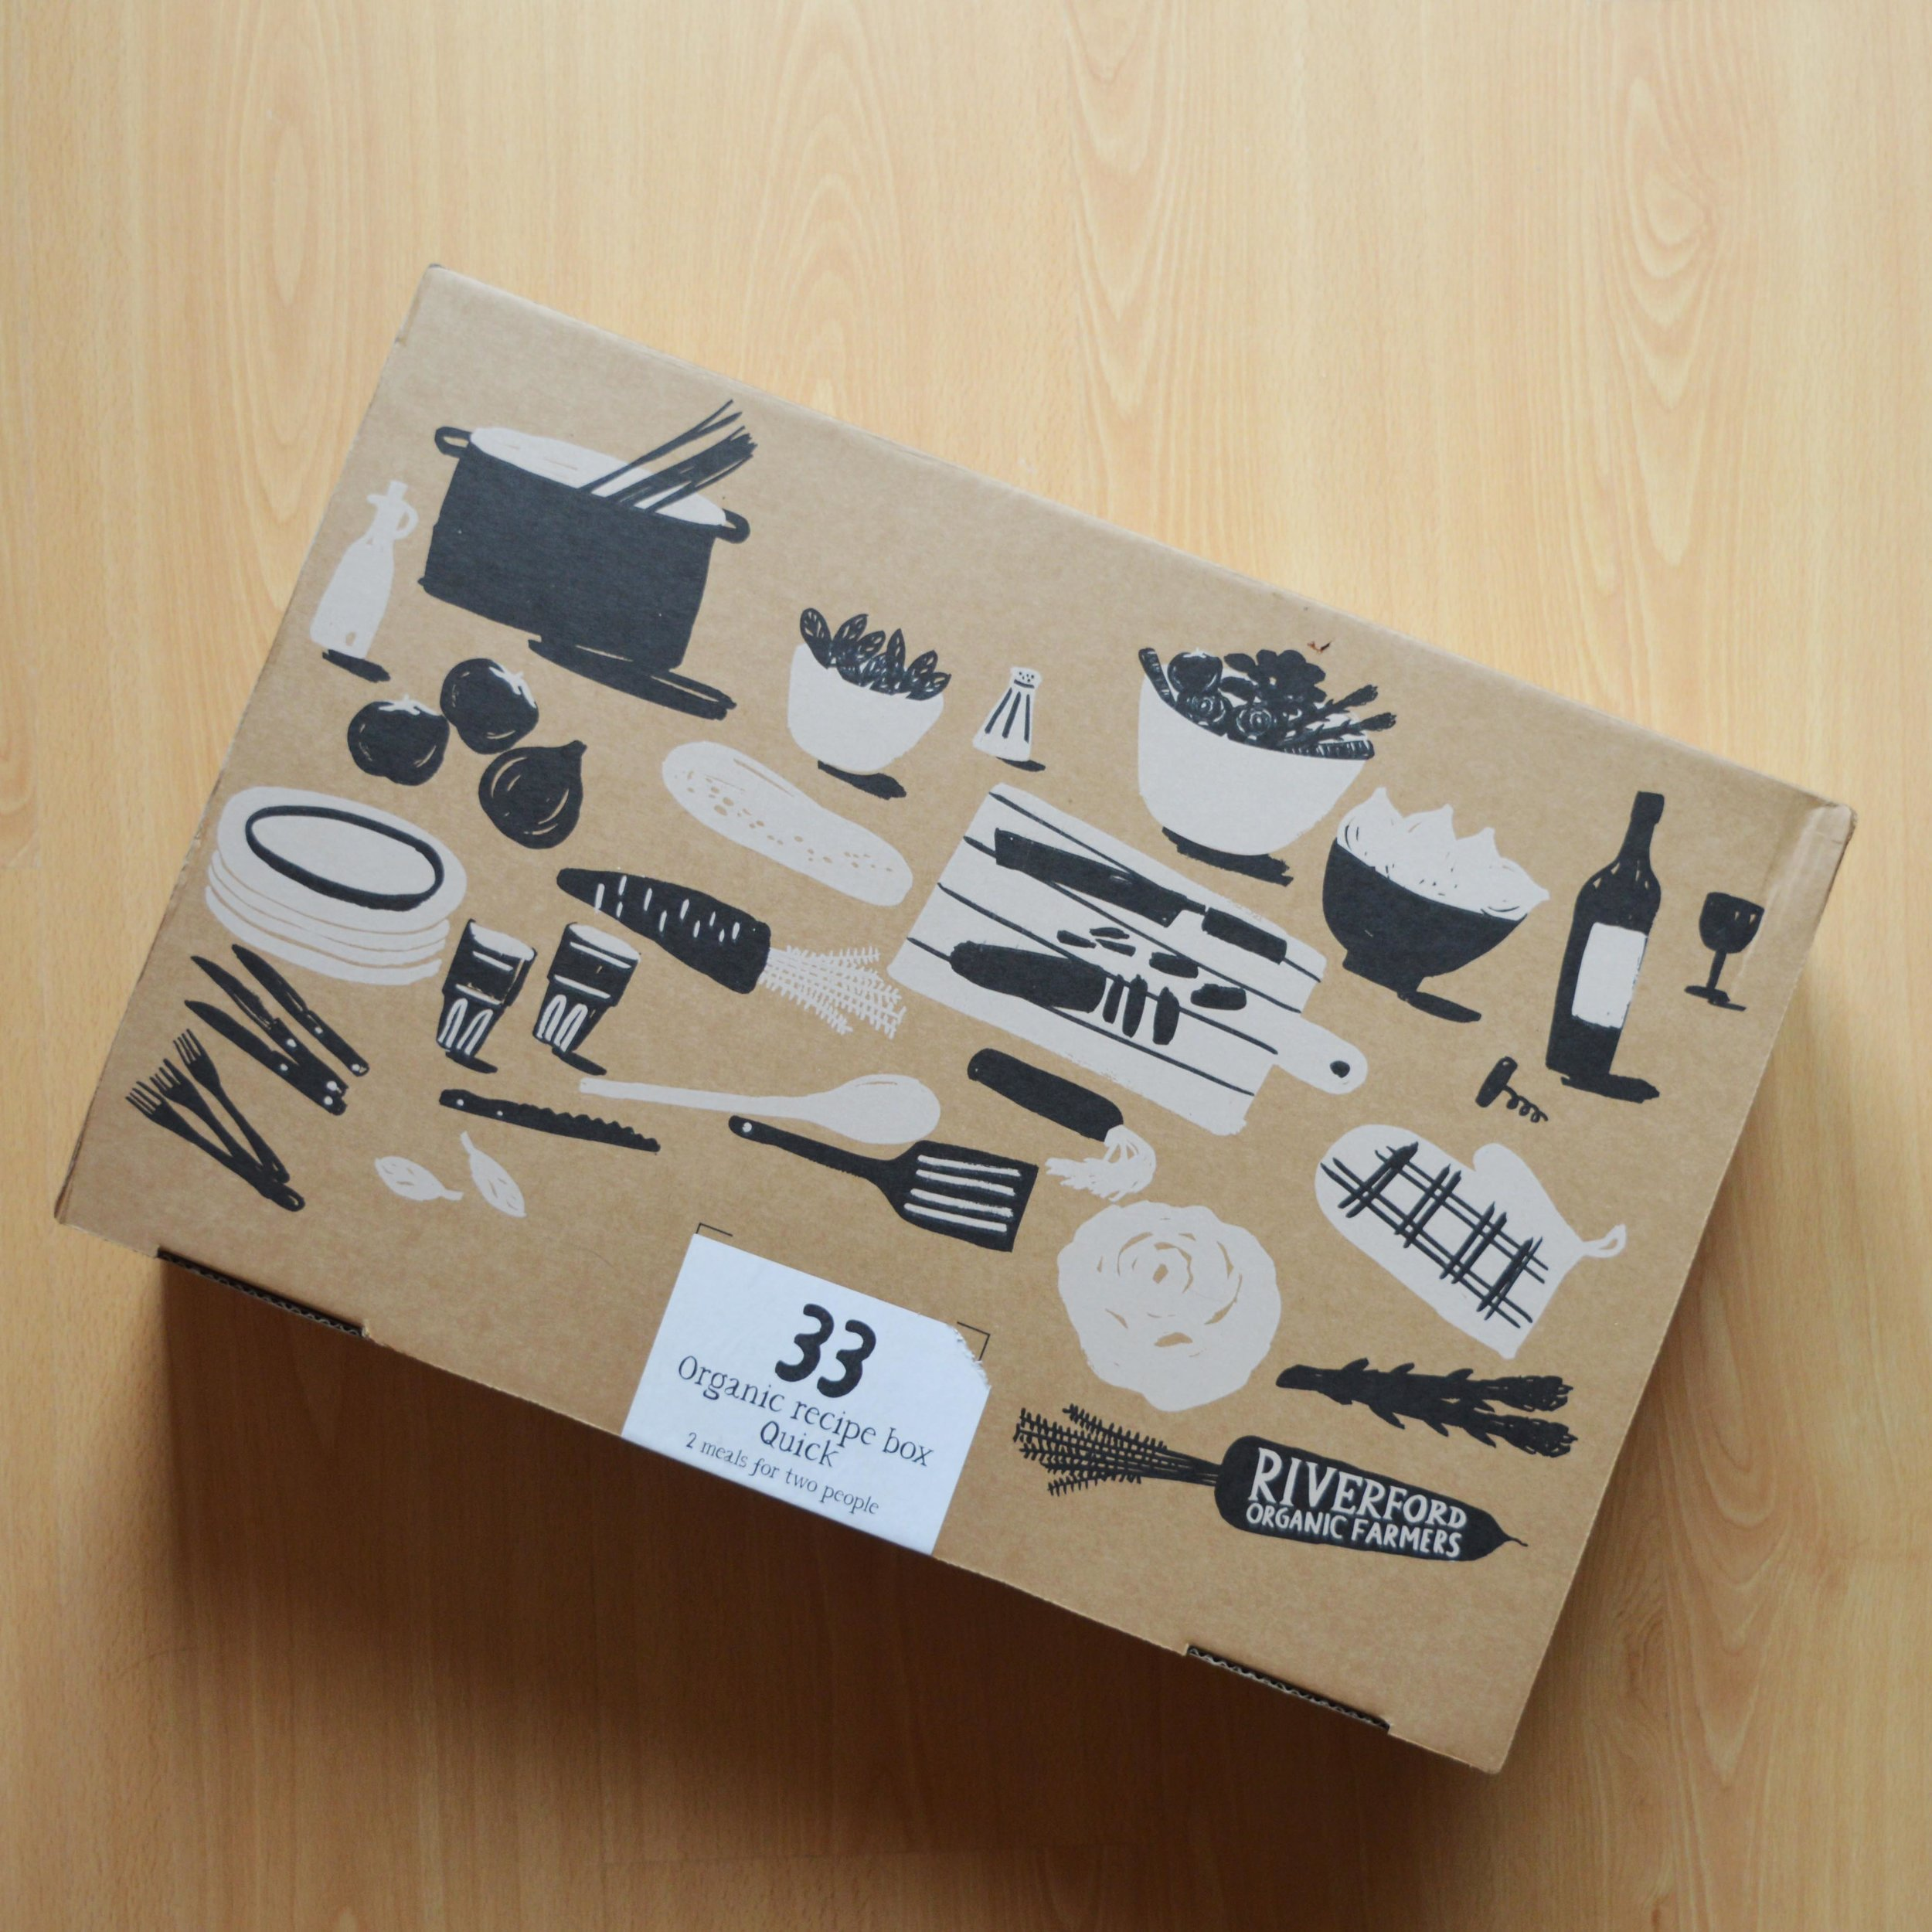 Riverford recipe box packaging